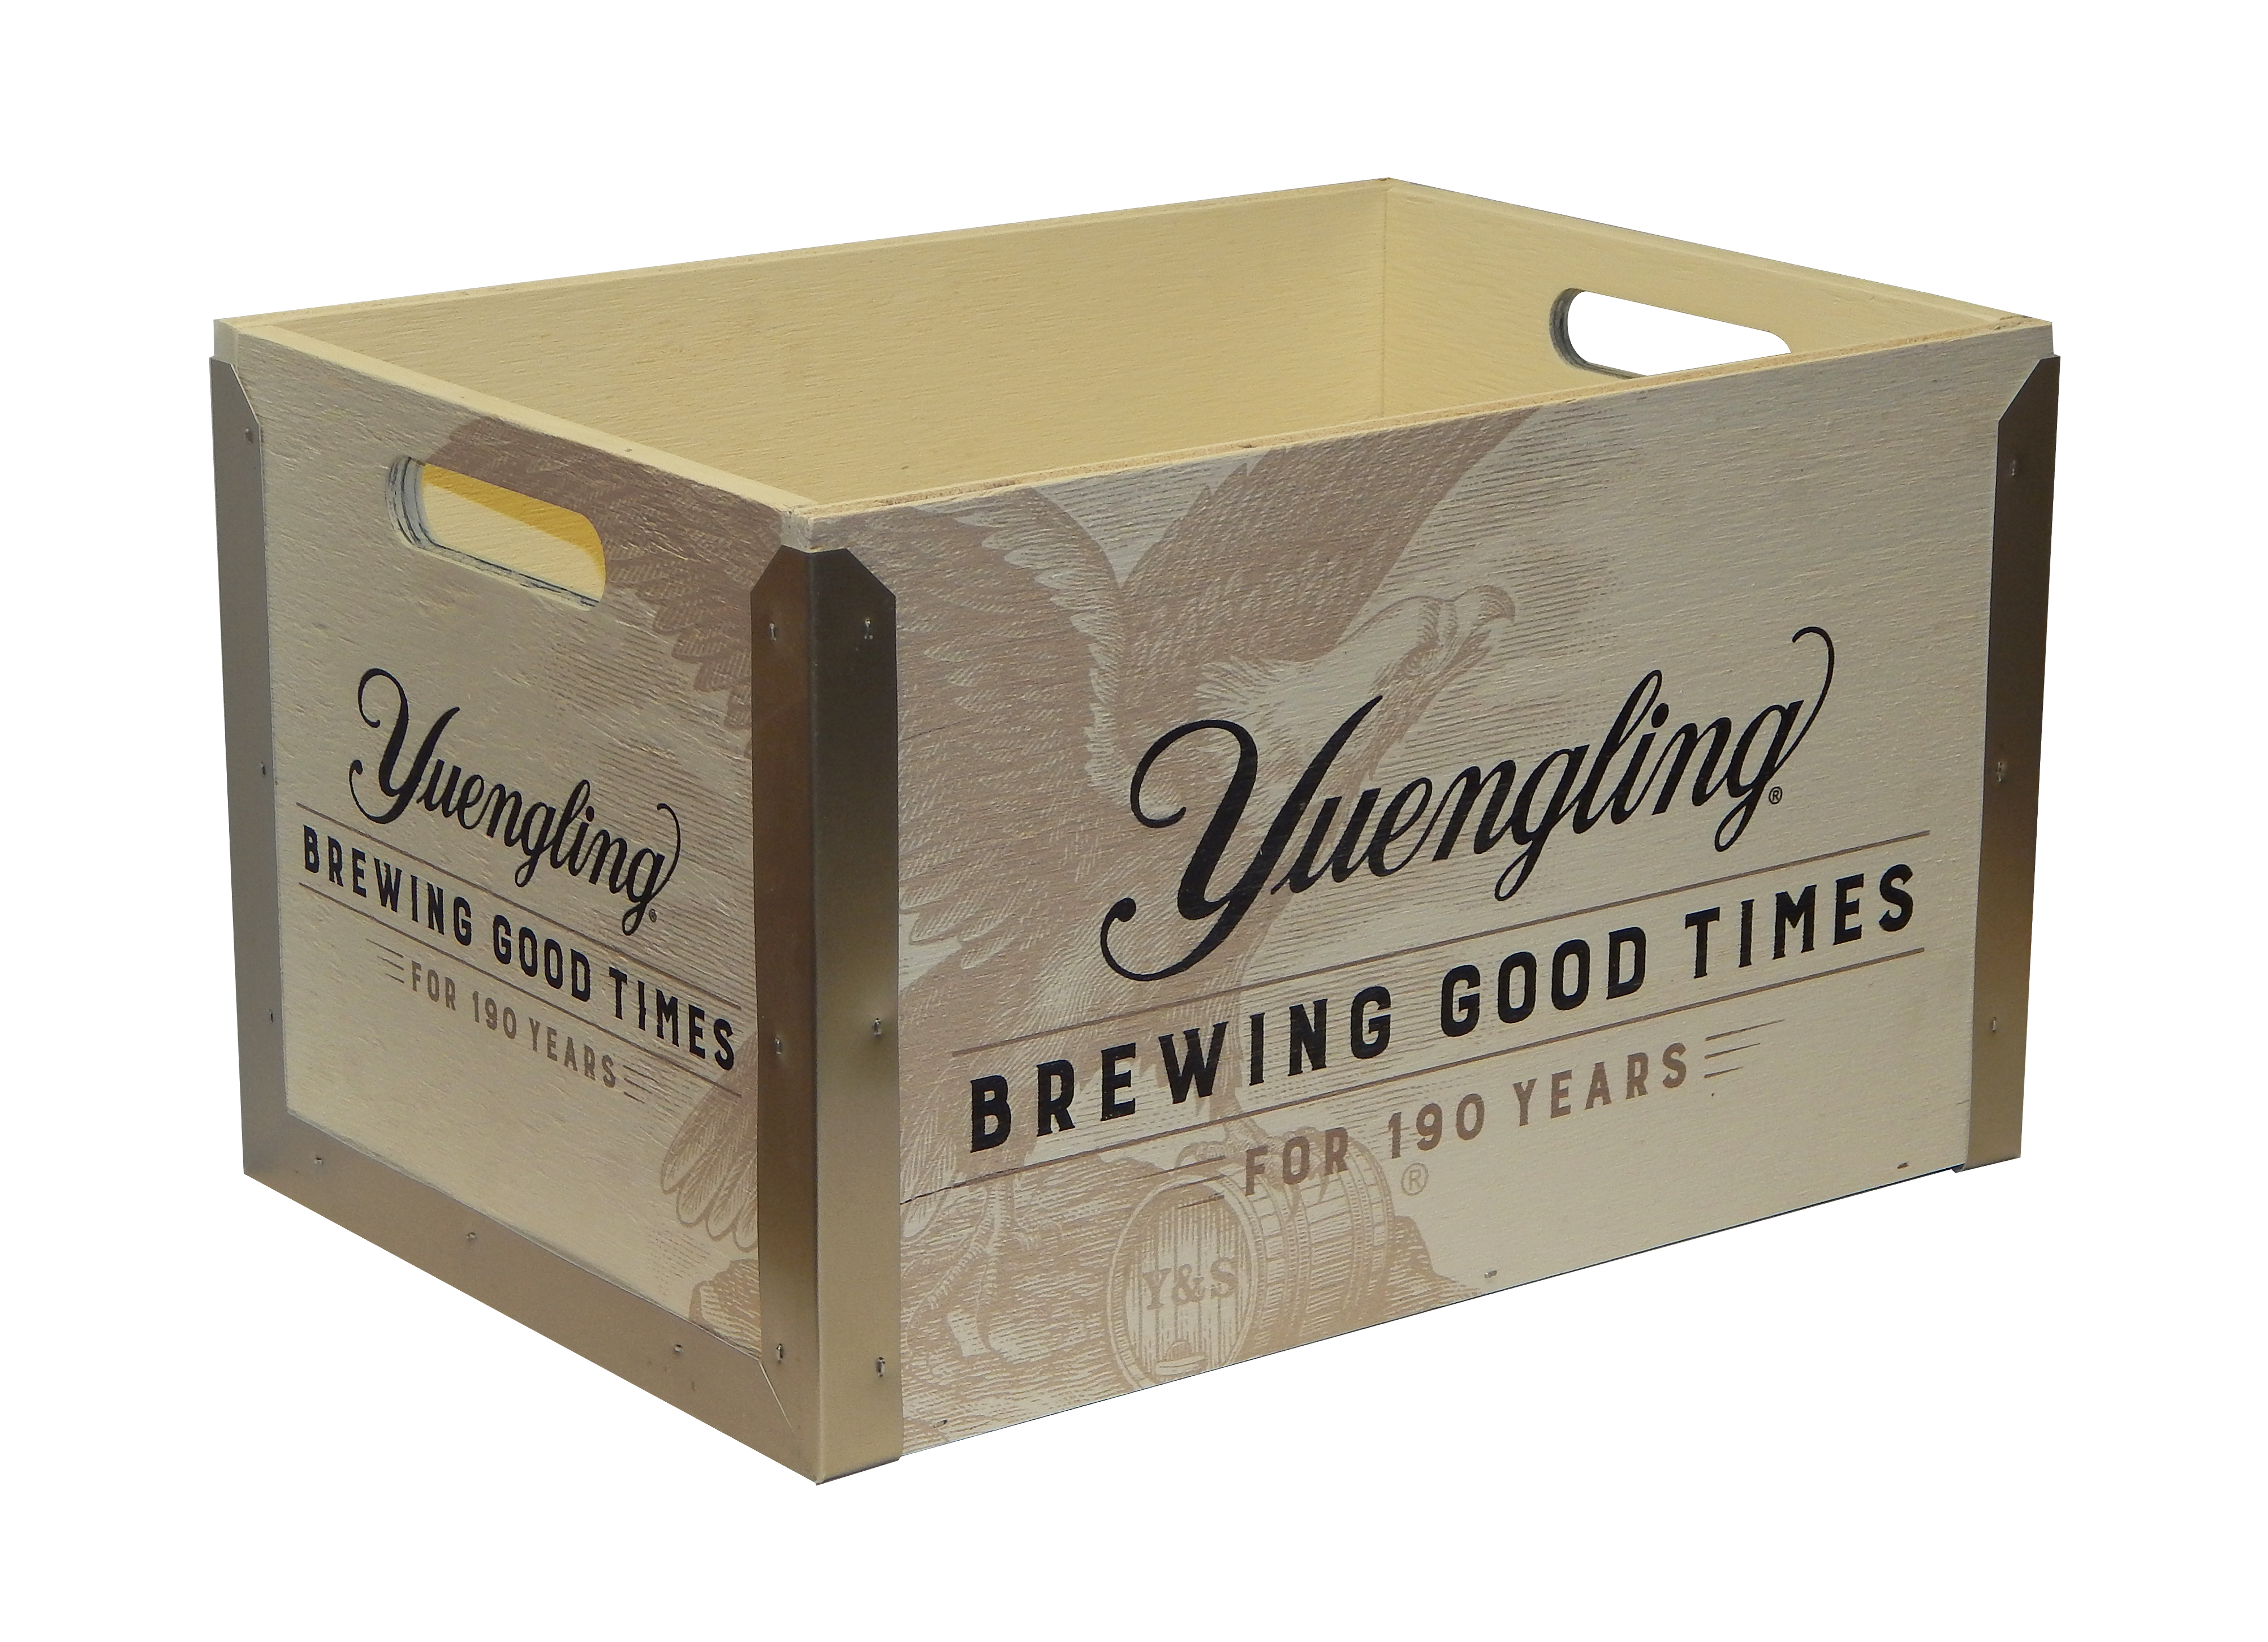 YUE-225 Yuengling 190 Years Crate 11-5-1